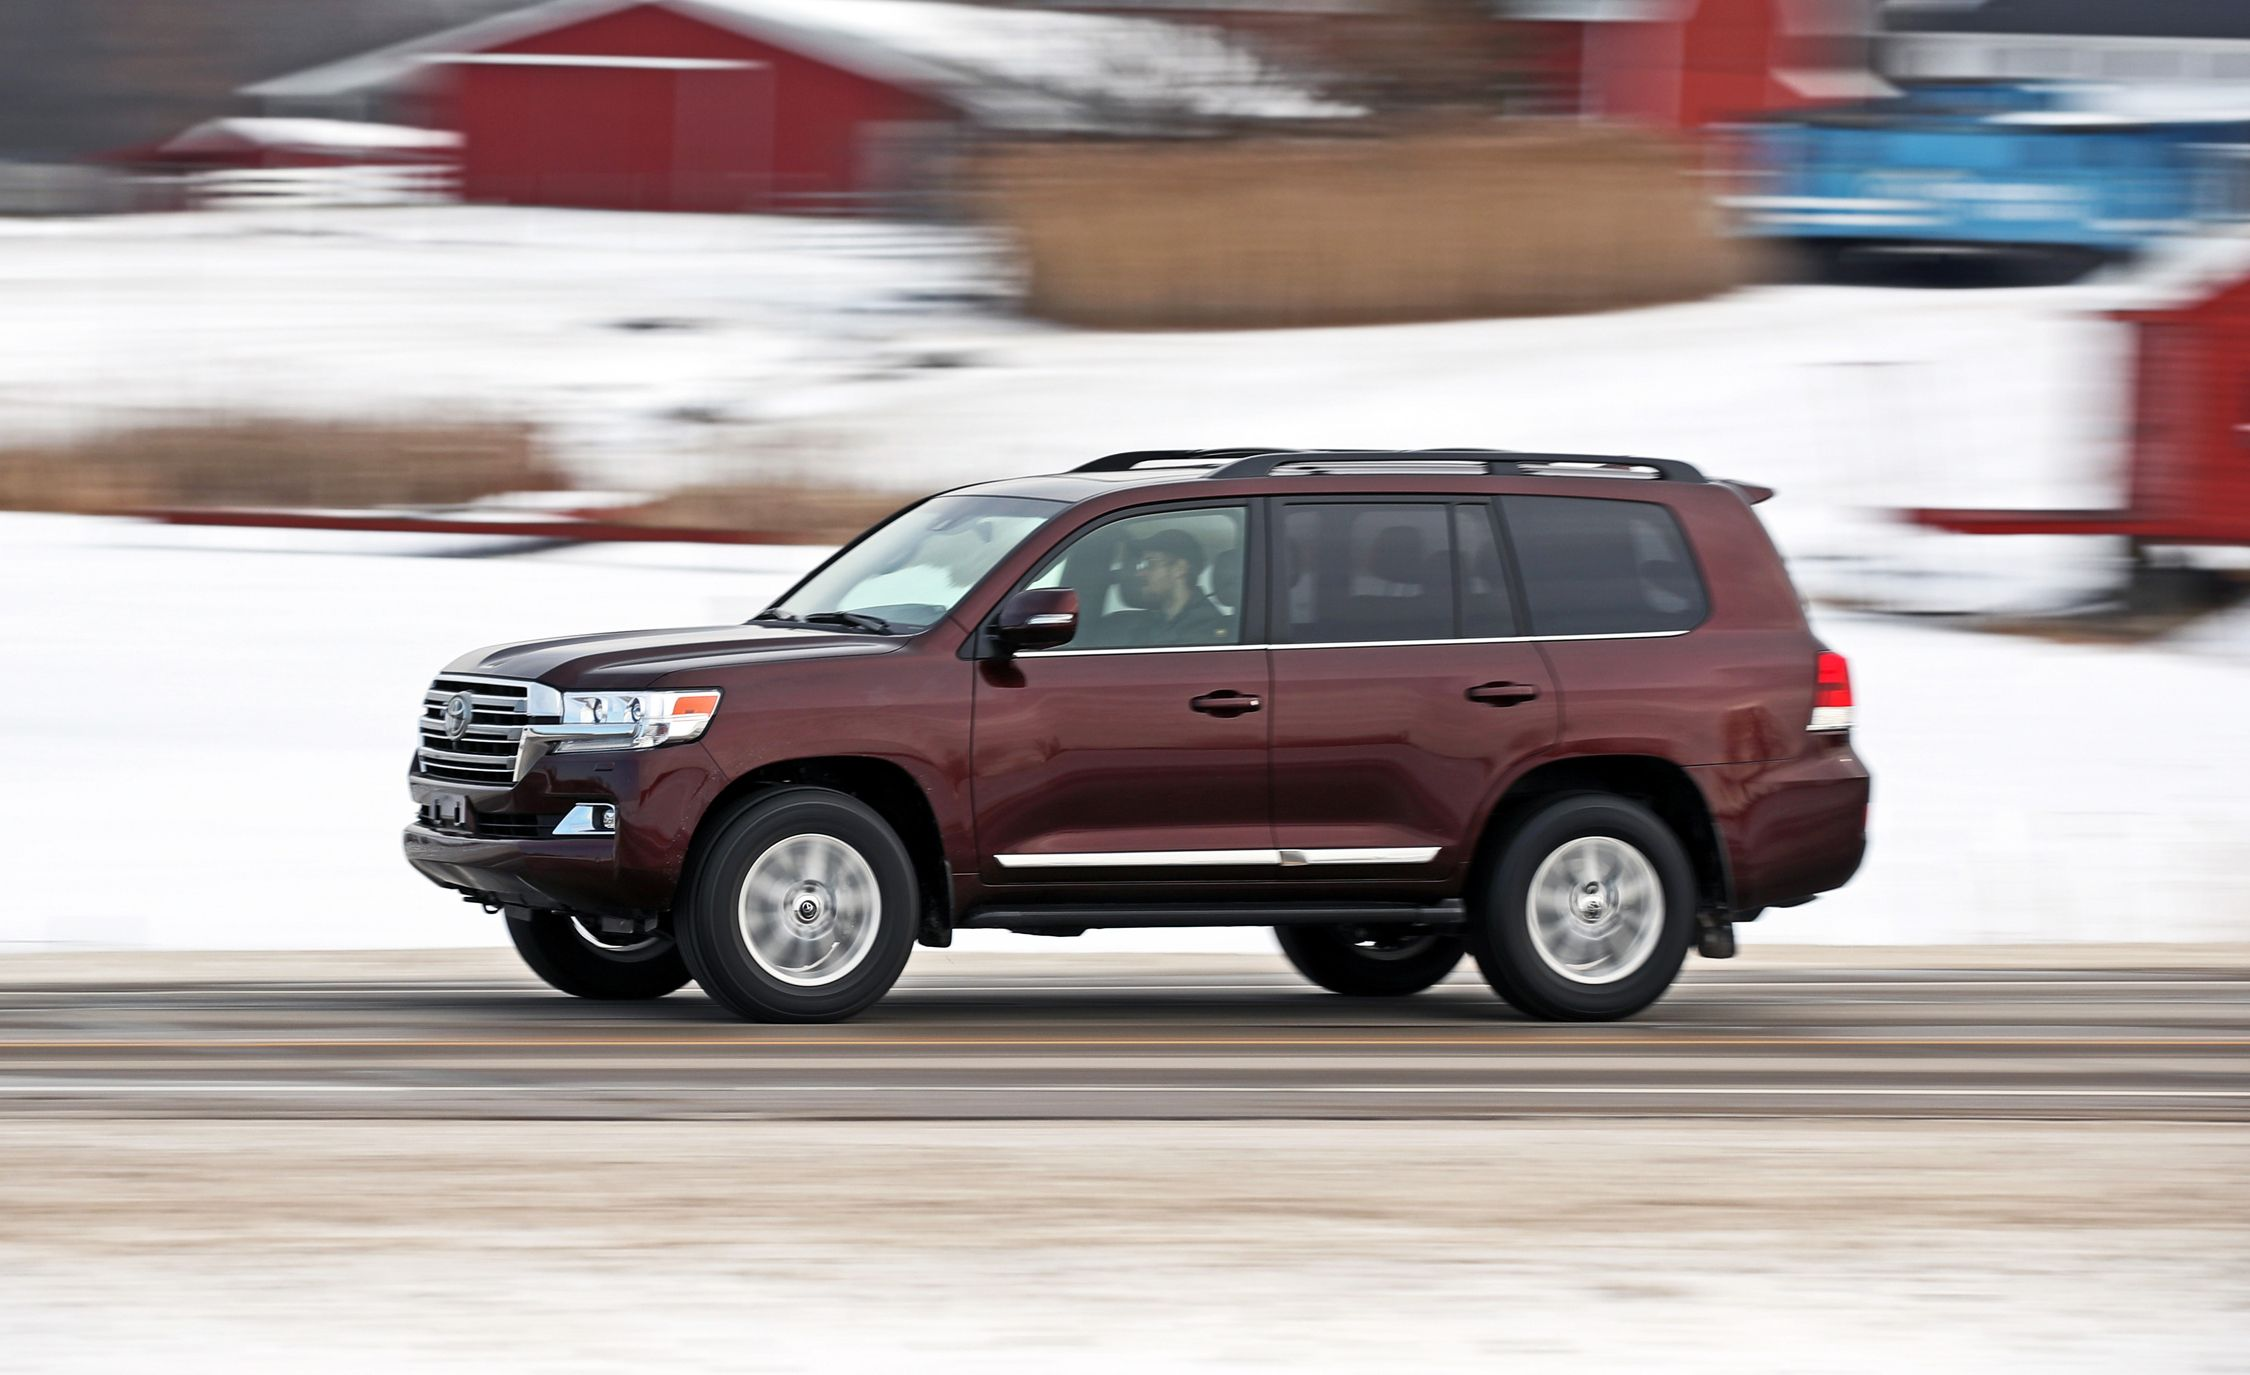 toyota land cruiser reviews toyota land cruiser price. Black Bedroom Furniture Sets. Home Design Ideas